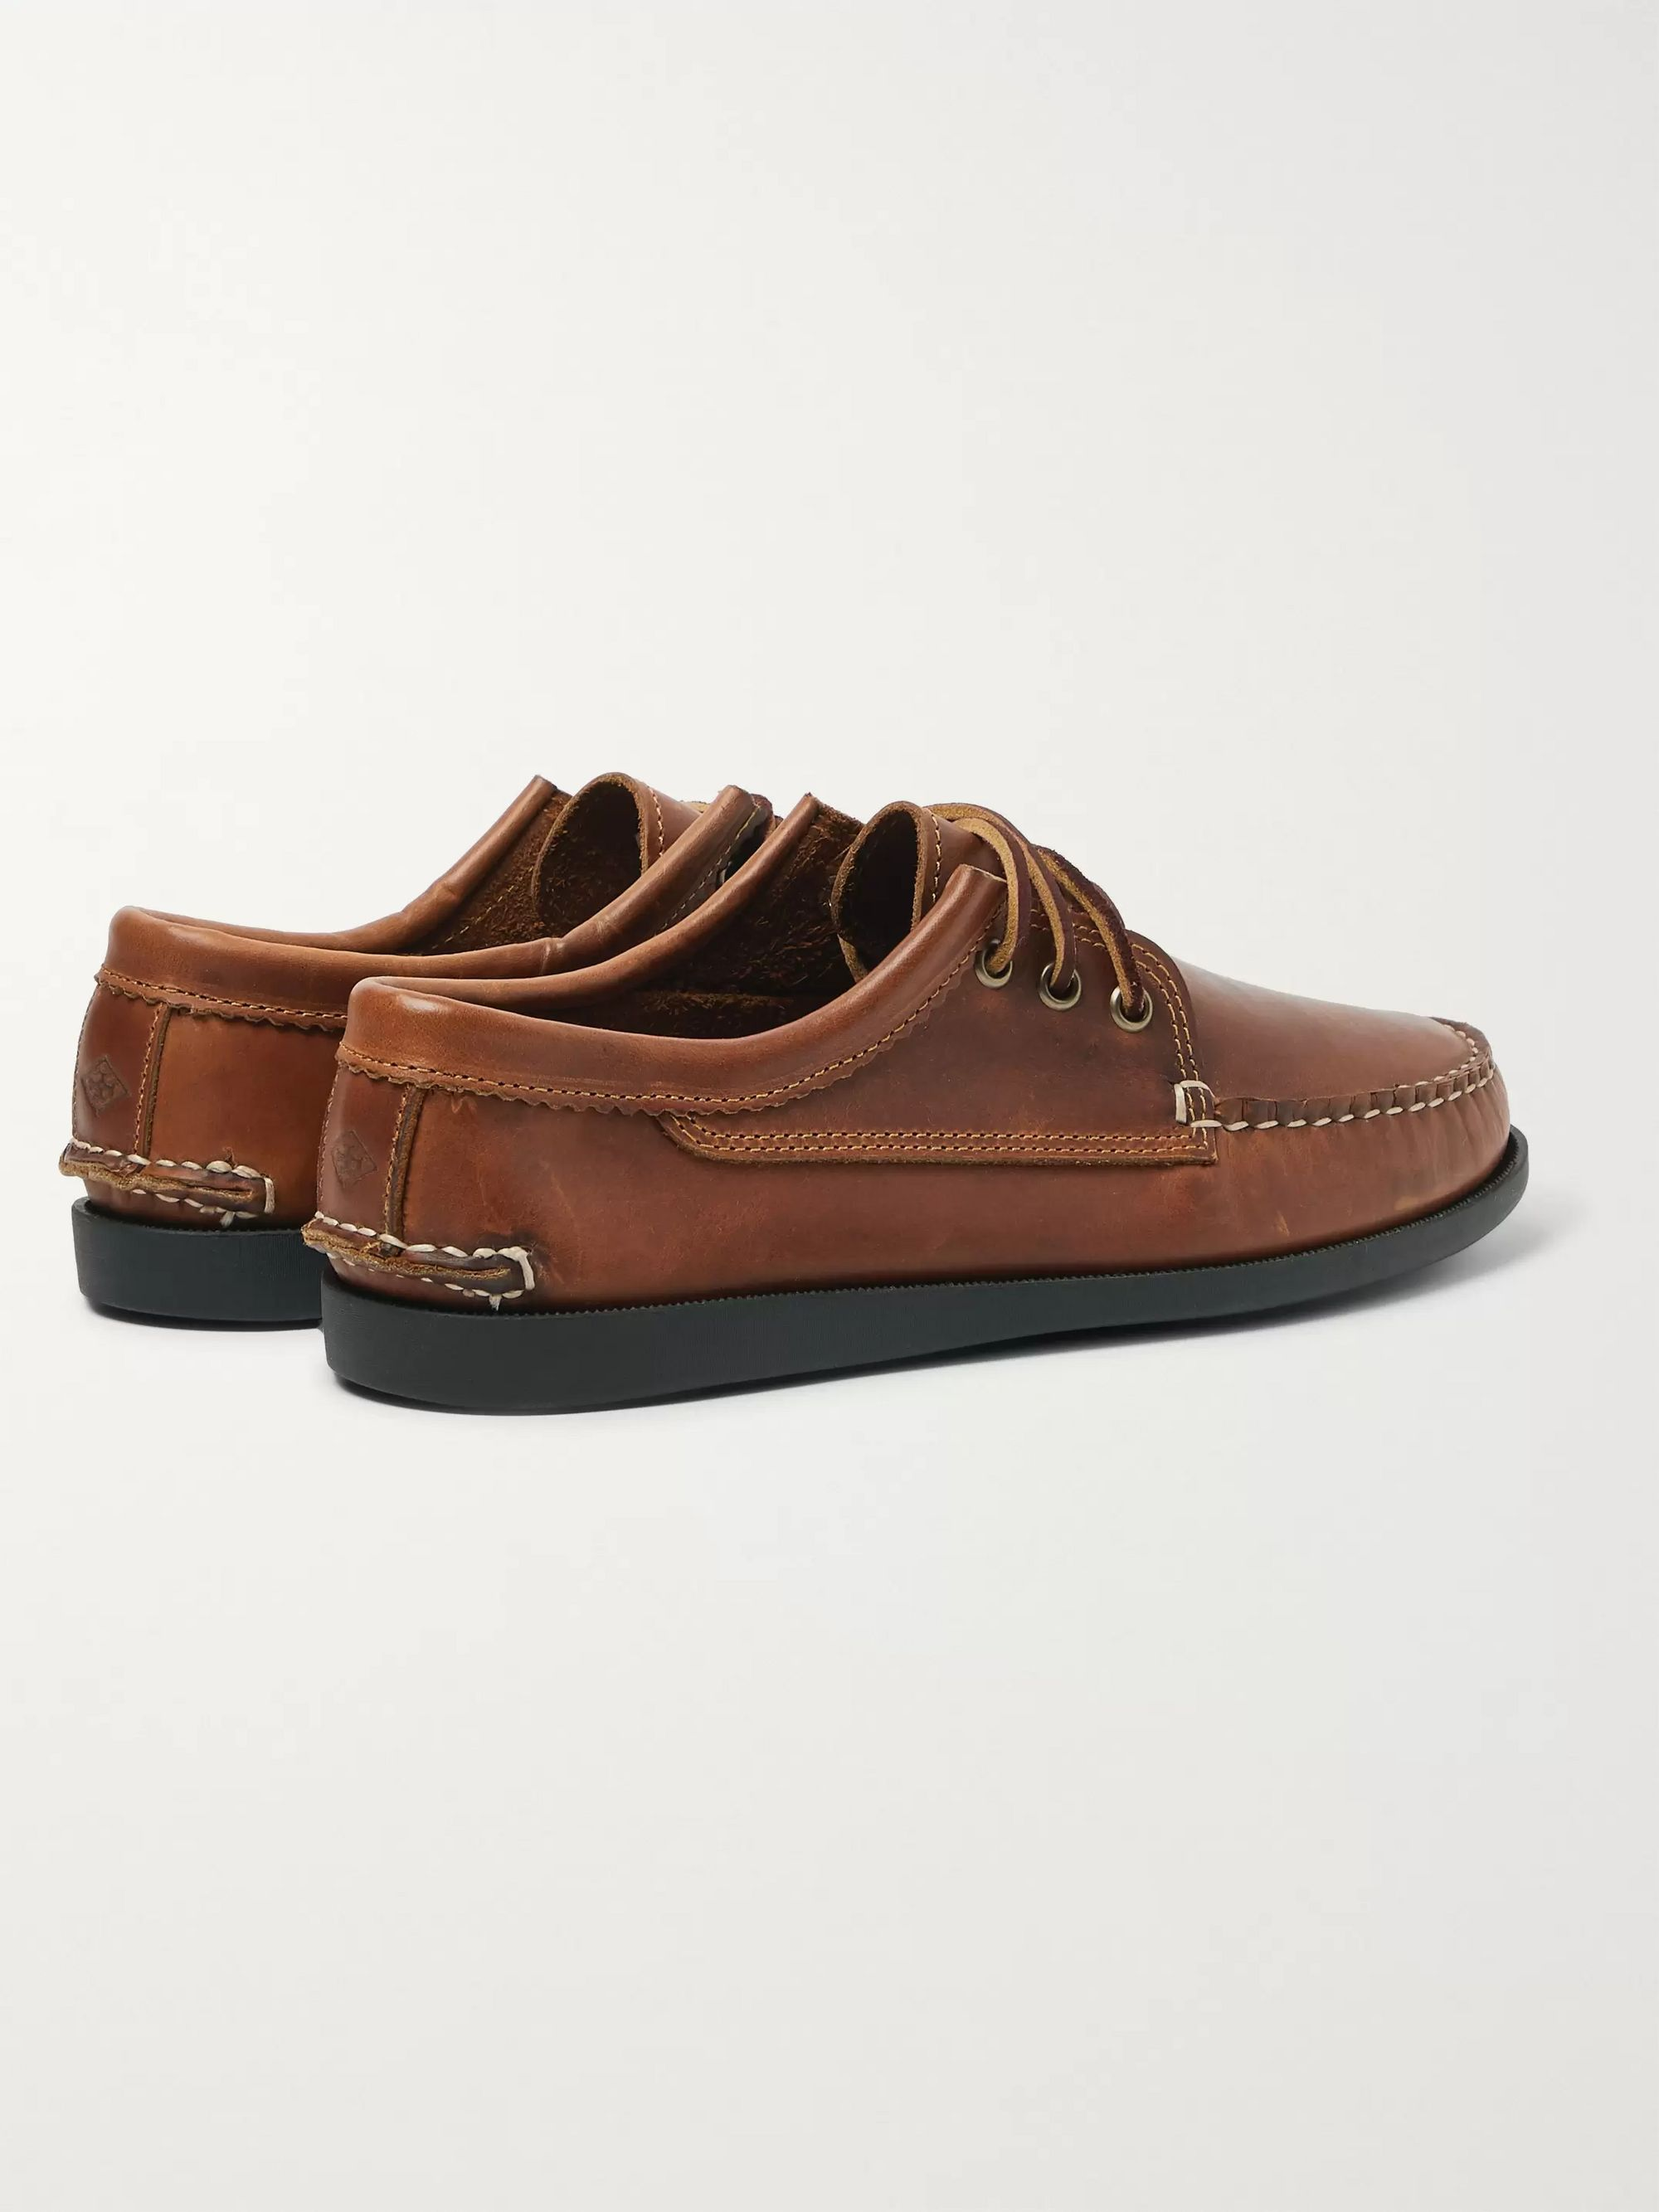 Brown Leather Boat Shoes   Quoddy